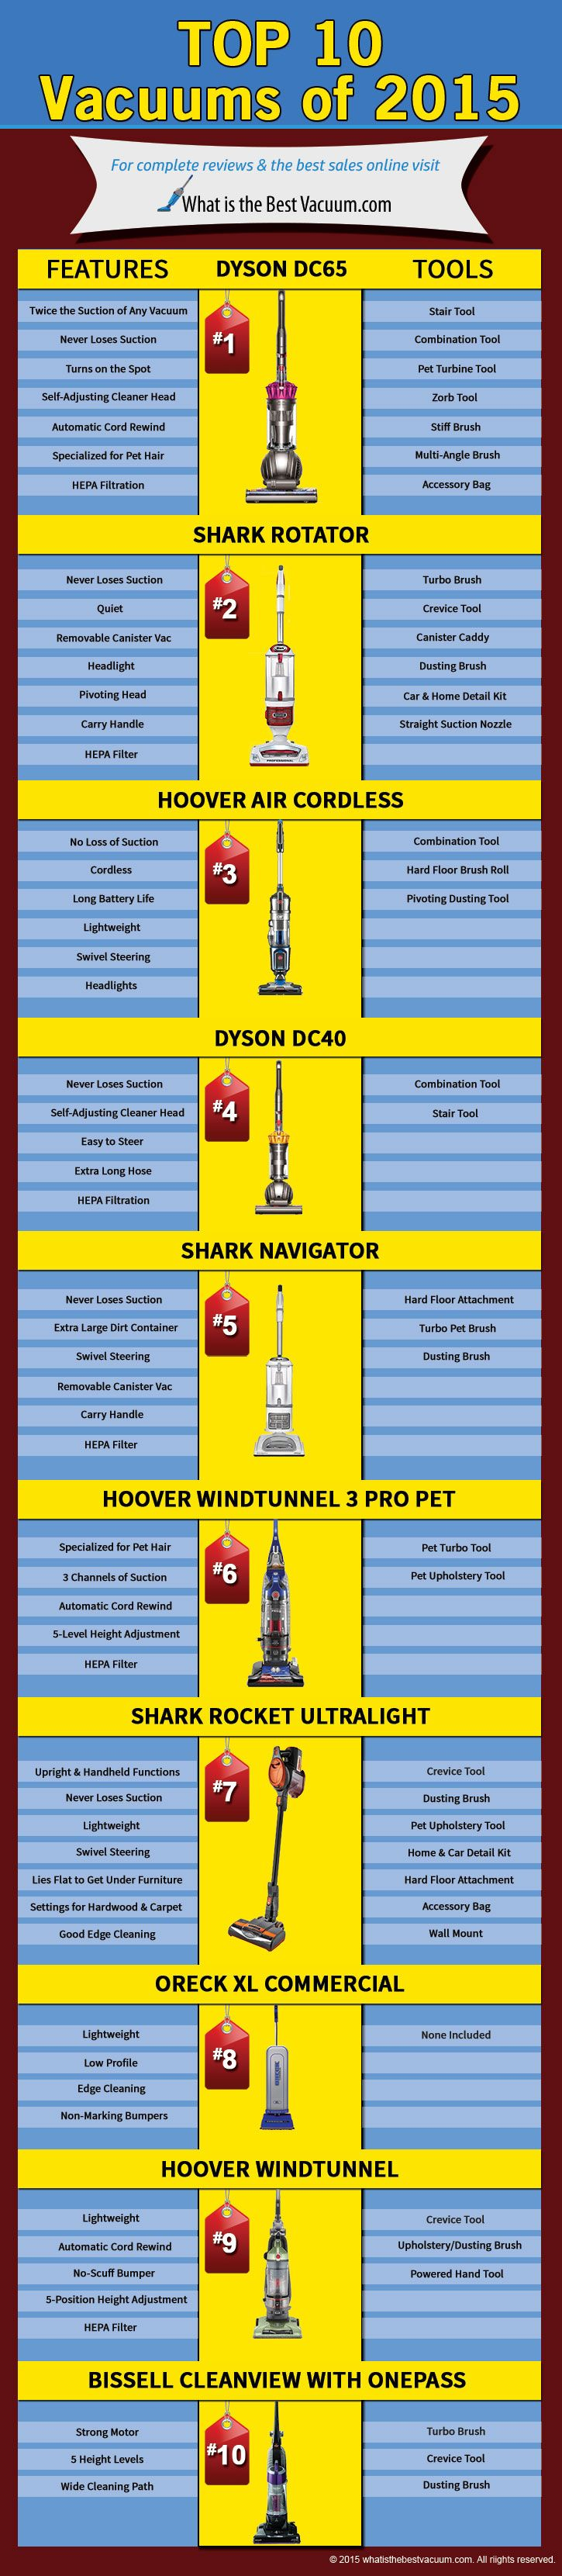 Wondering what vacuum cleaner to buy? Check this list of the best vacuum cleaners of 2015 to see which ones make the grade and which ones to avoid. #infographic